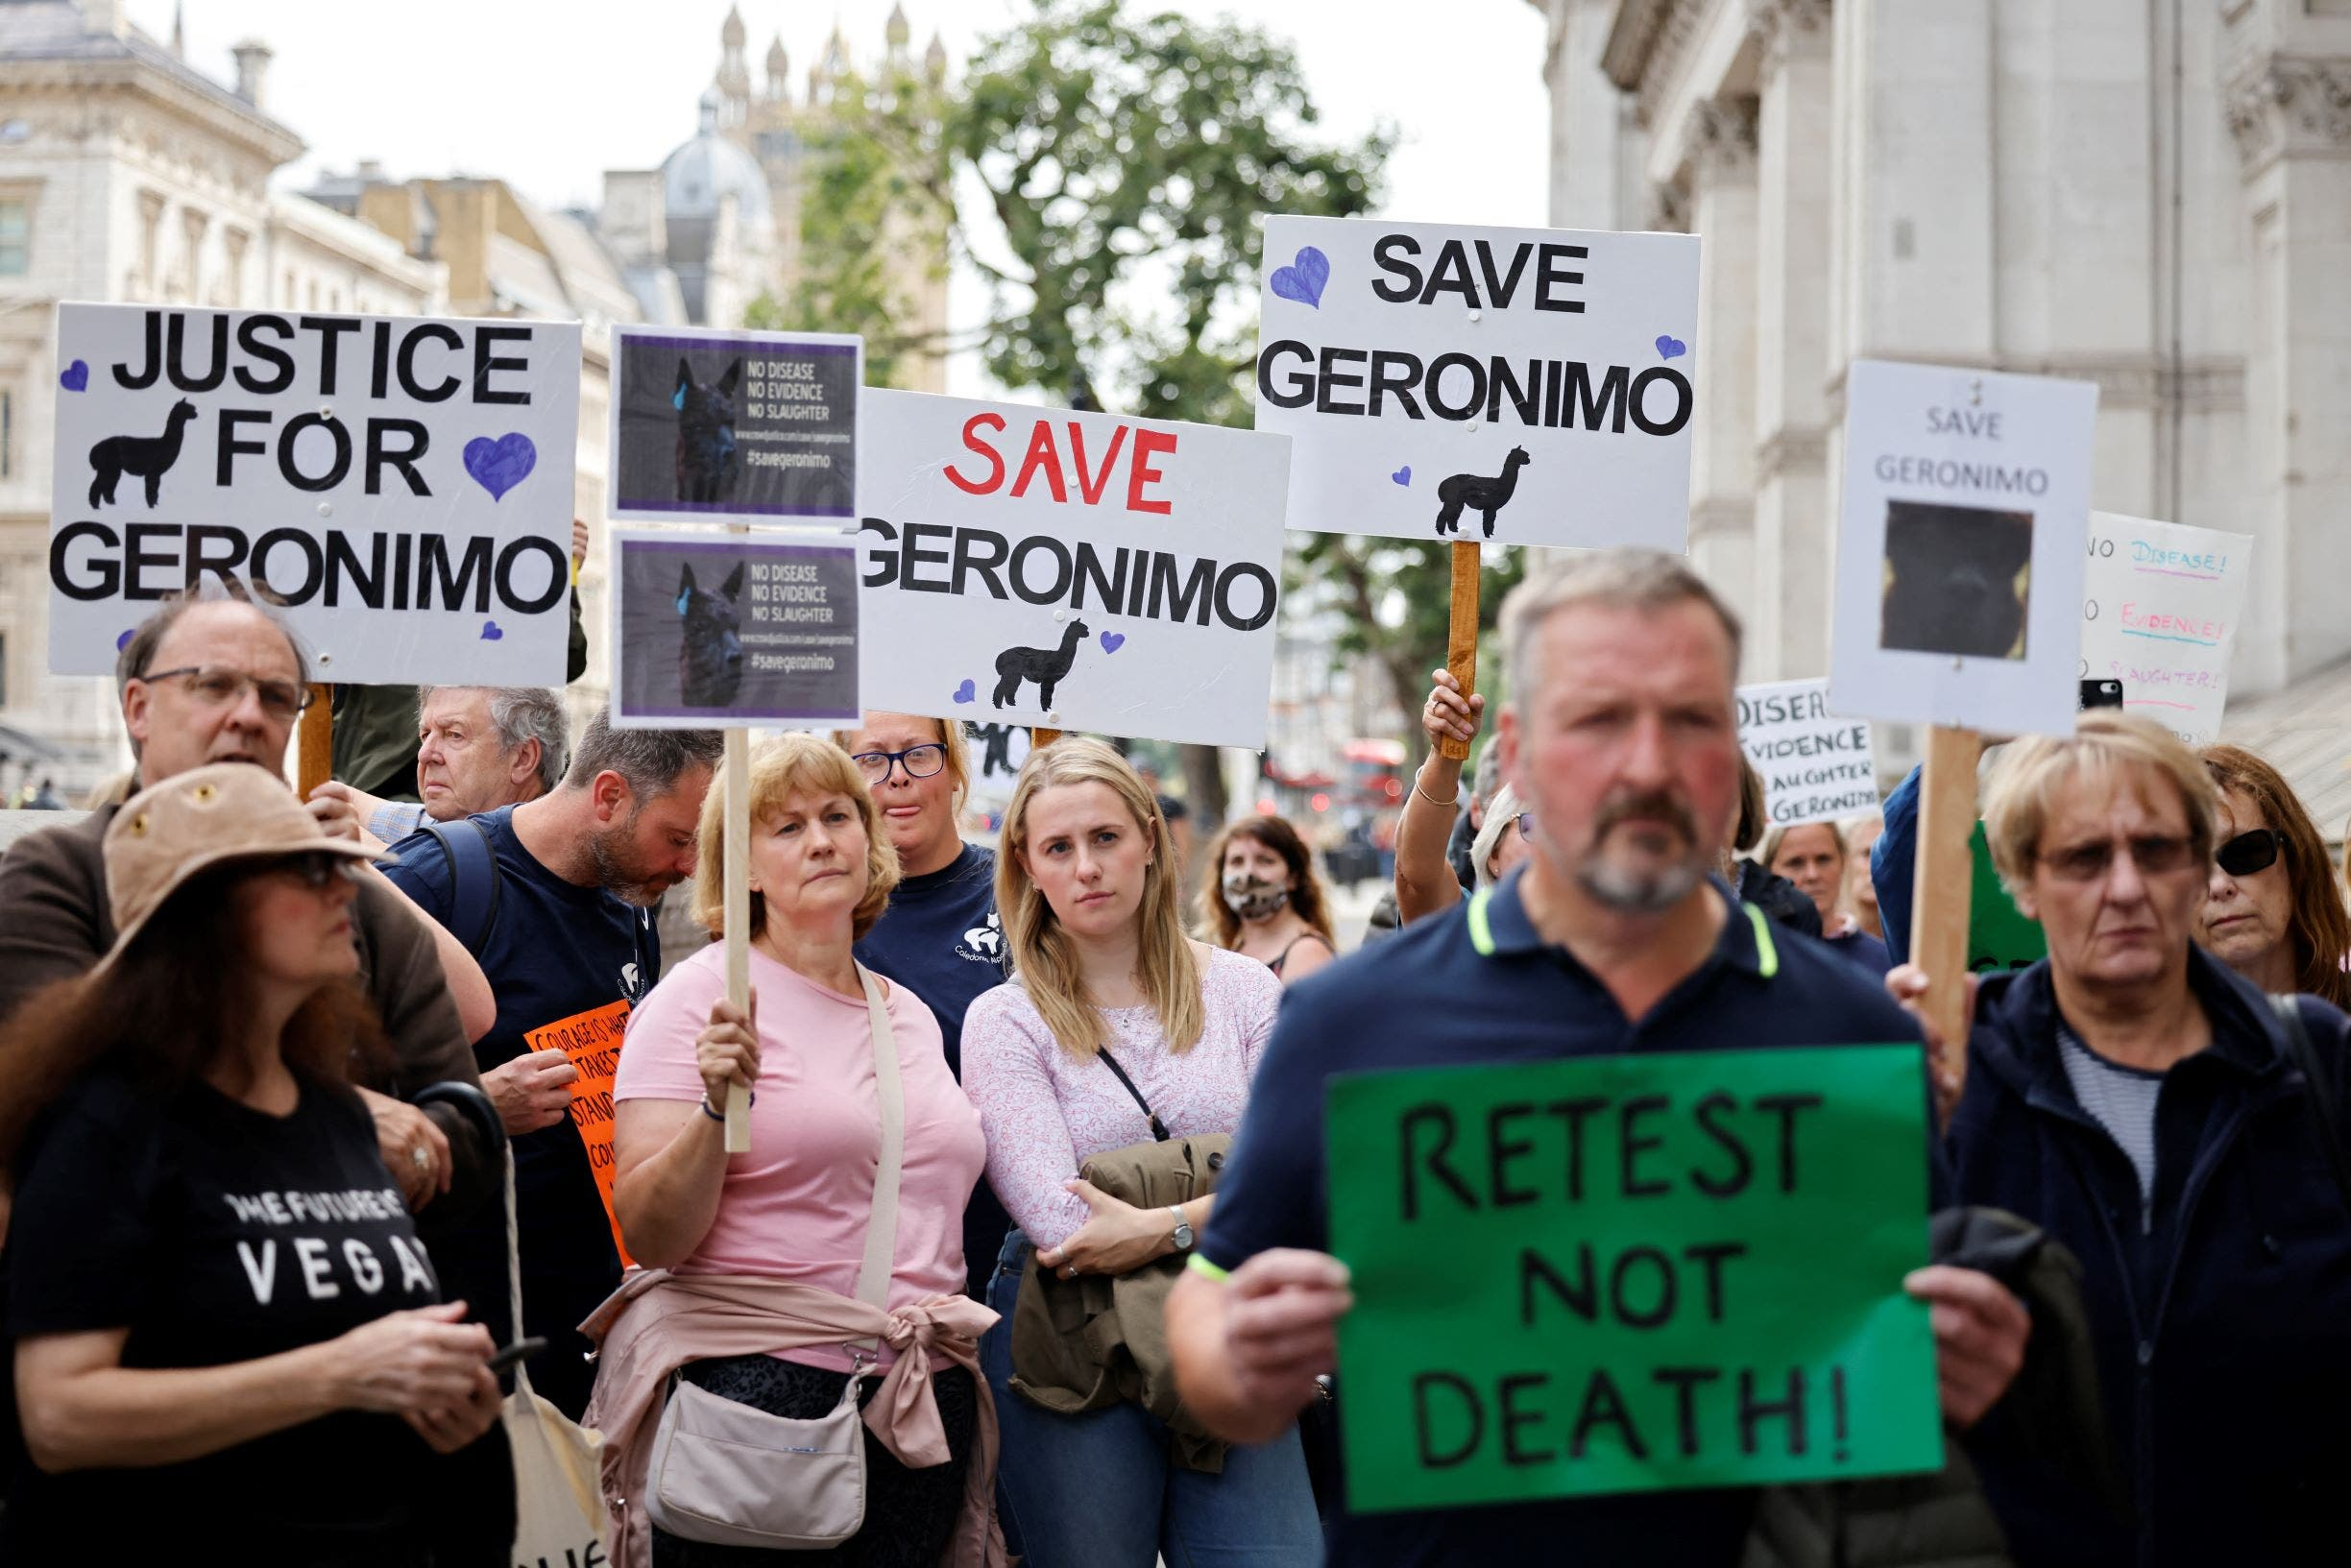 Protesters hold up placards as they gather outside Downing Street to protest against the decision to euthanize Geronimo, an alpaca which has tested positive for bovine tuberculosis, in cental London on August 9, 2021. (AFP)